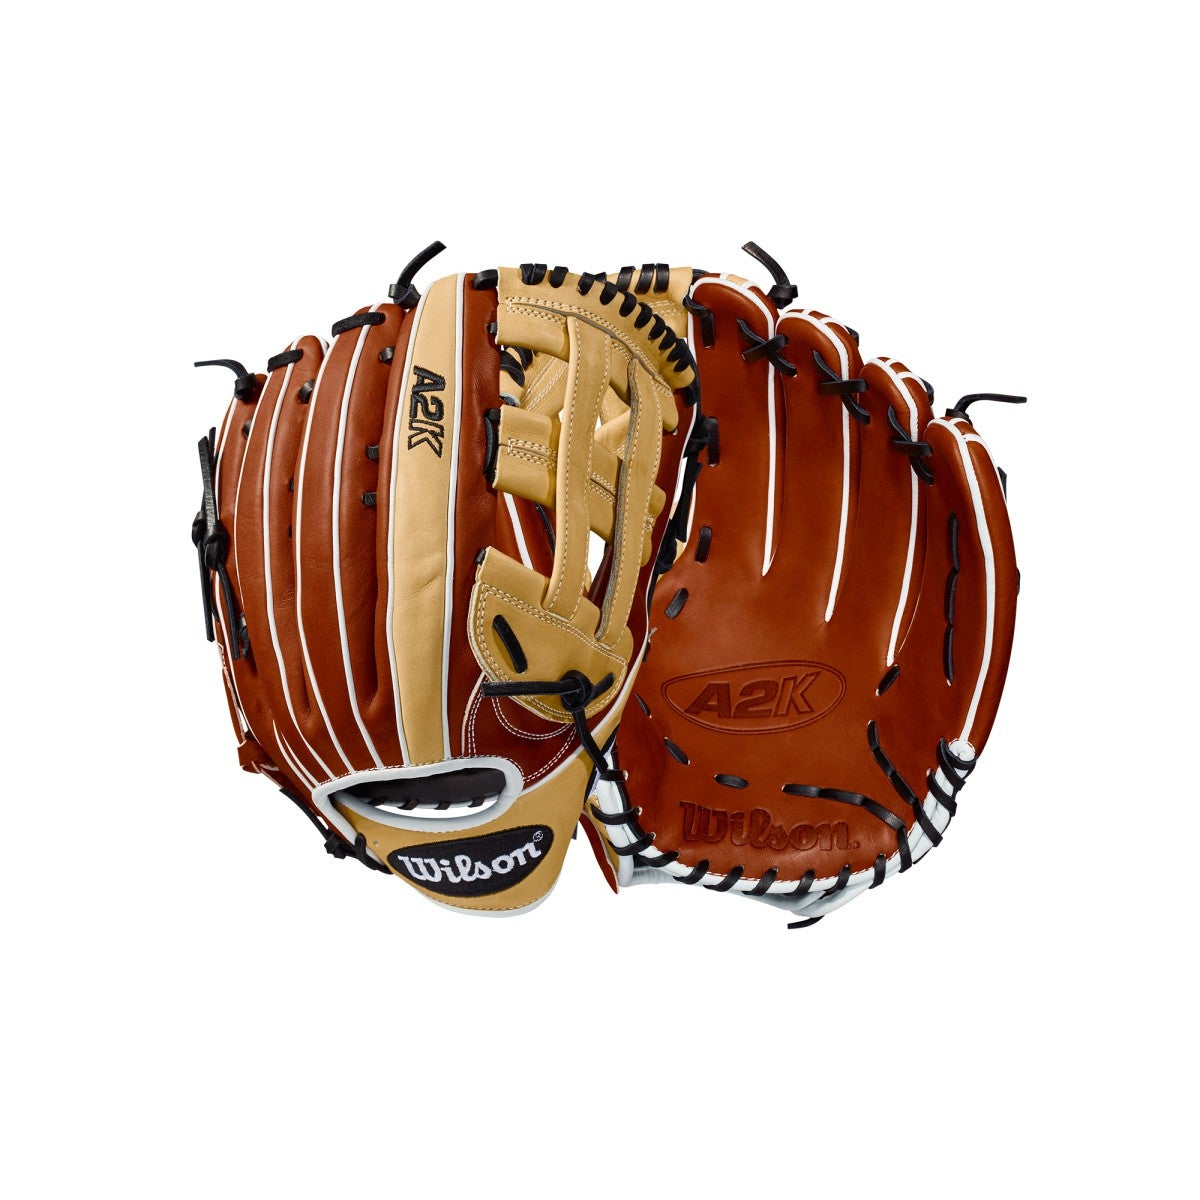 2018 Wilson A2K 1799 Outfield Baseball Glove - 12.75